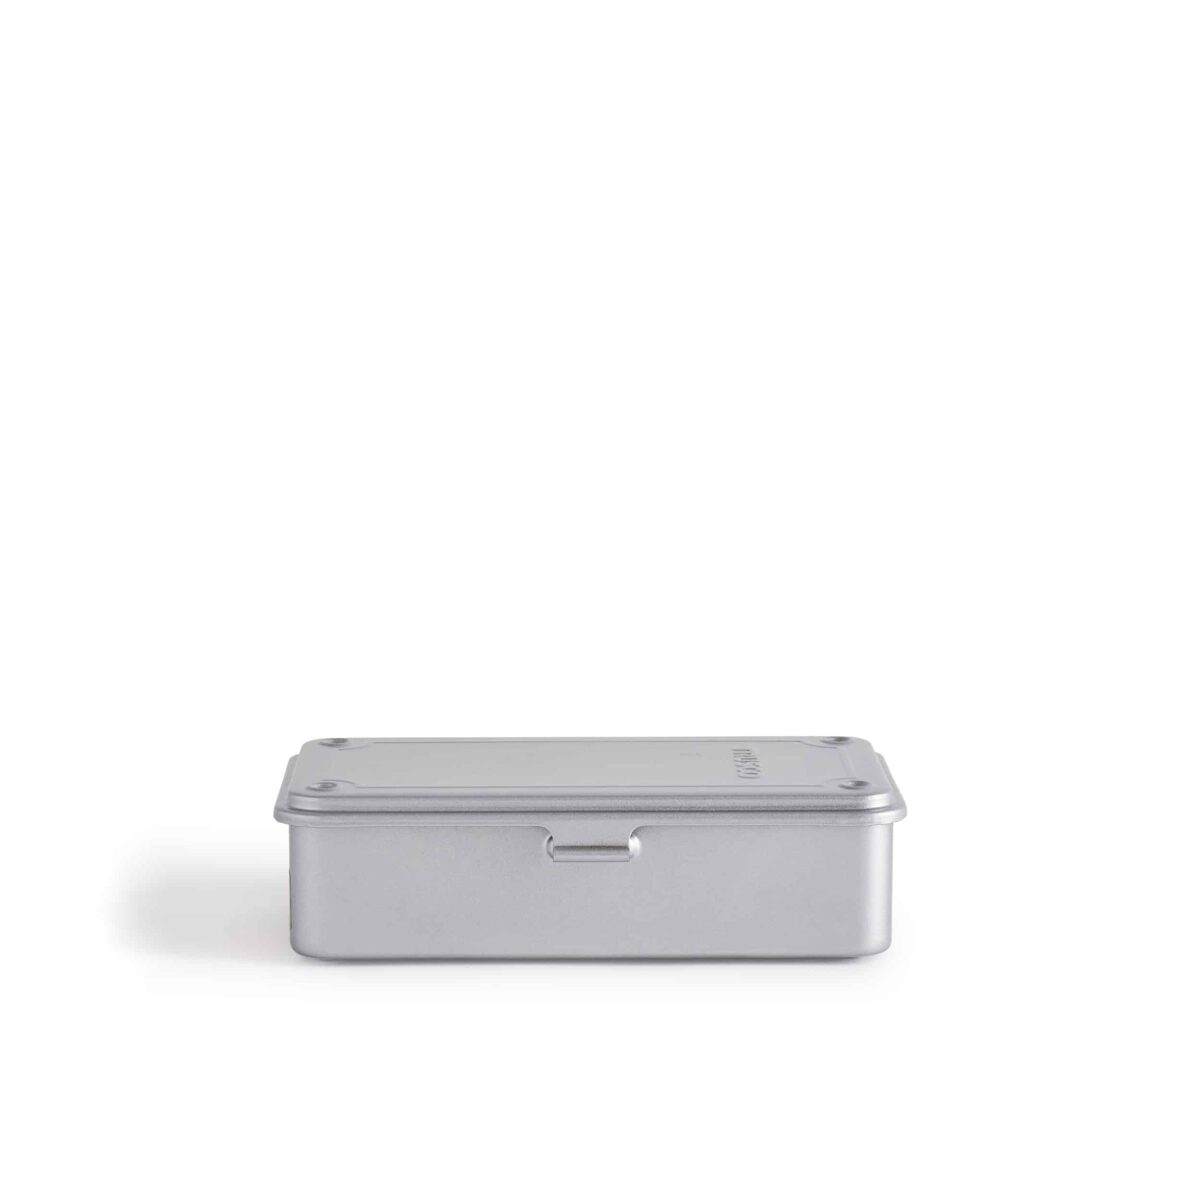 Trusco Component Box Small Silver – Another-Country-Photo Credit Yeshen Venema -web ready-21.11.185313